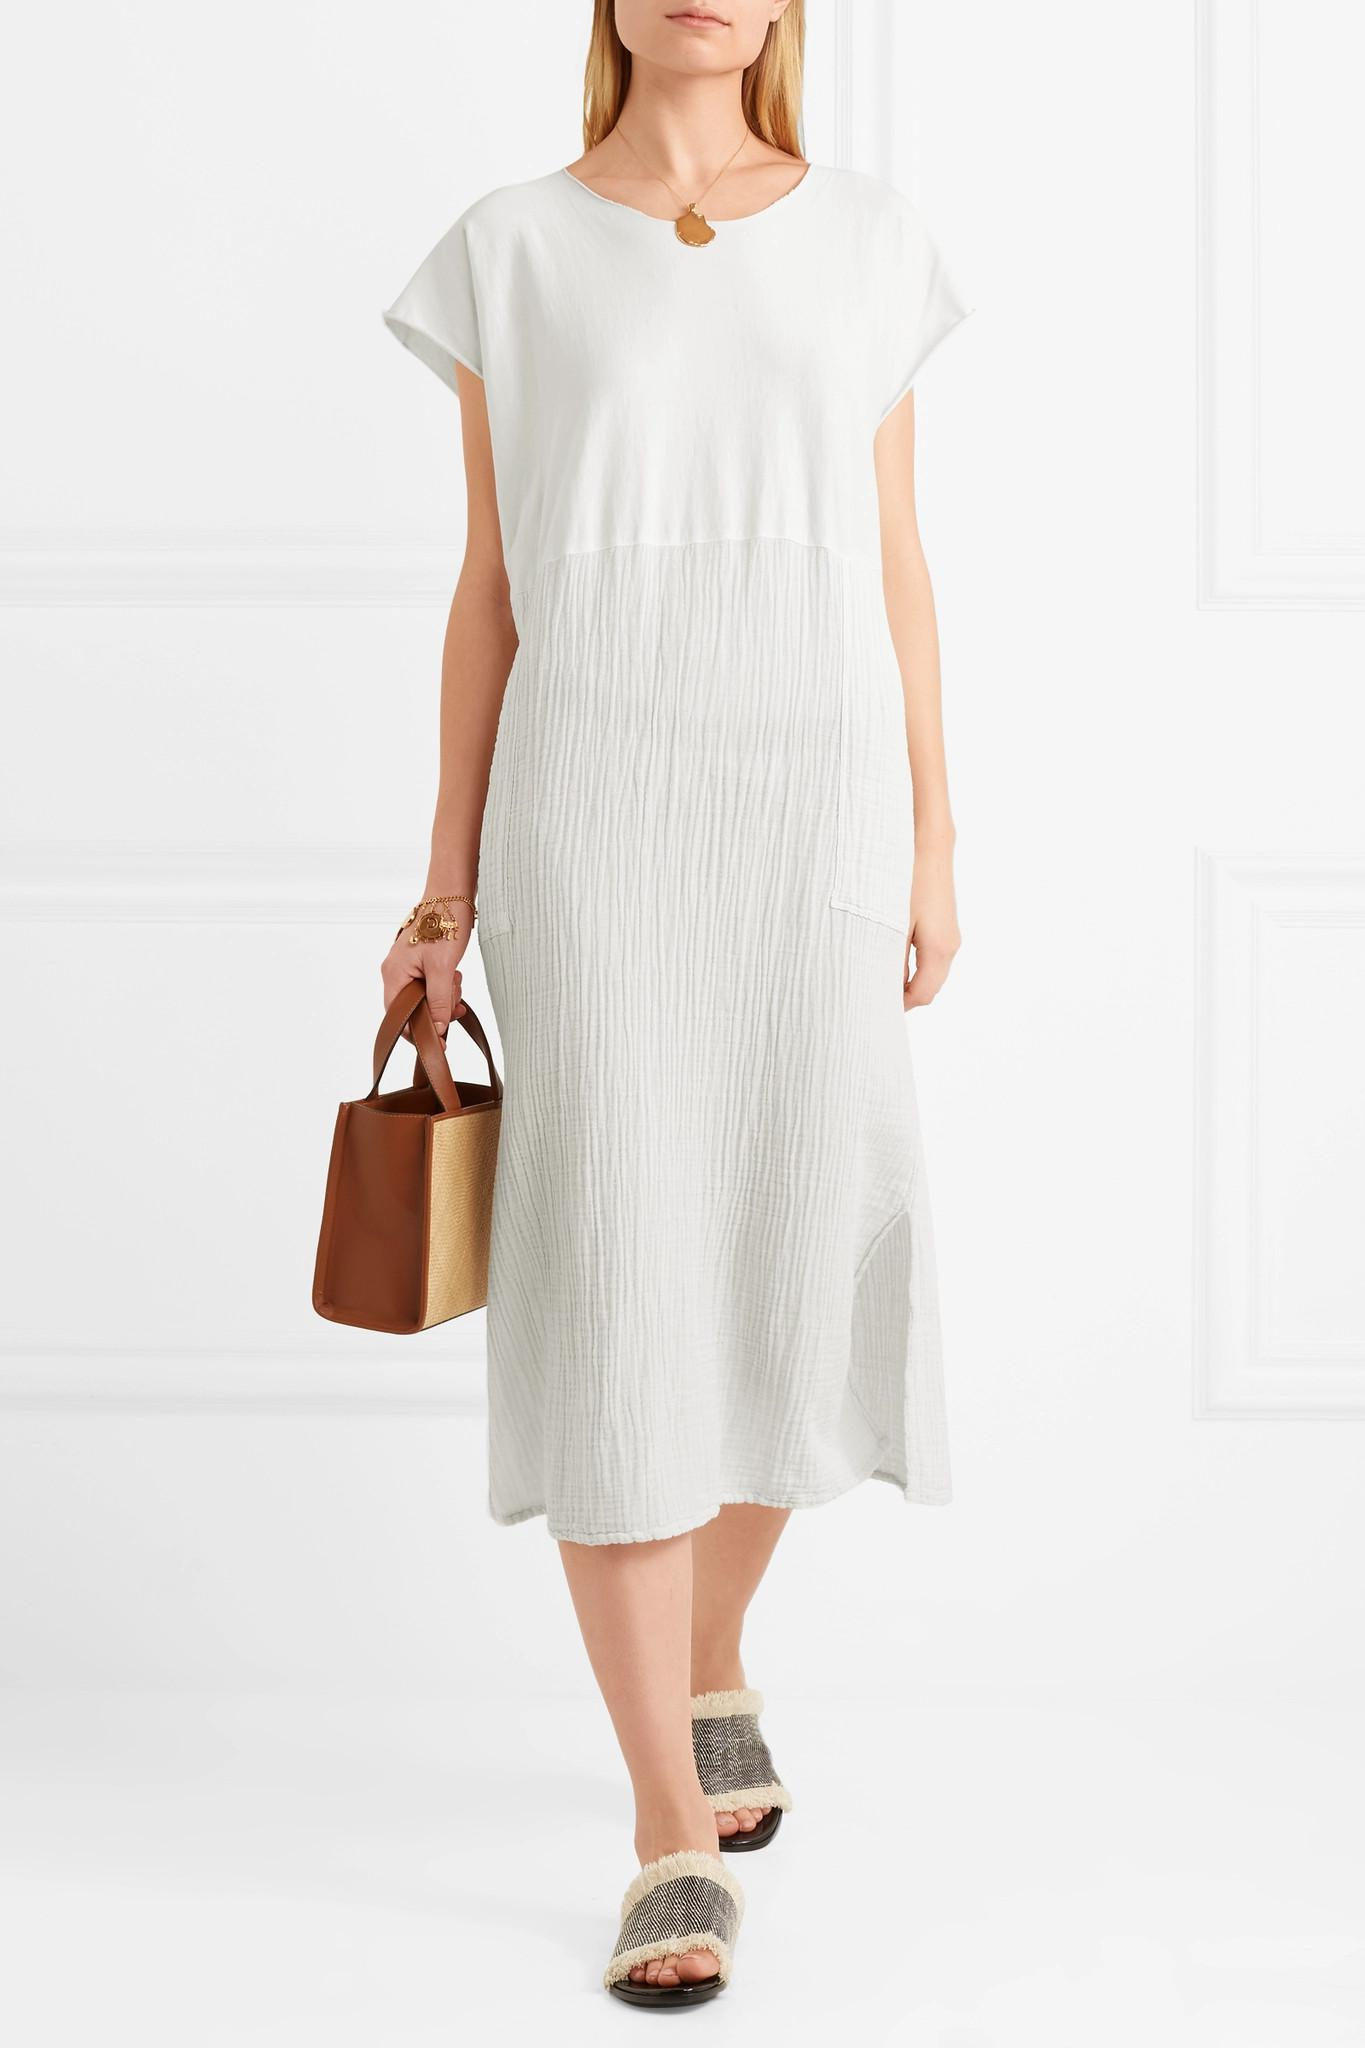 Paneled Cotton Midi Dress - White Raquel Allegra UfbhB2